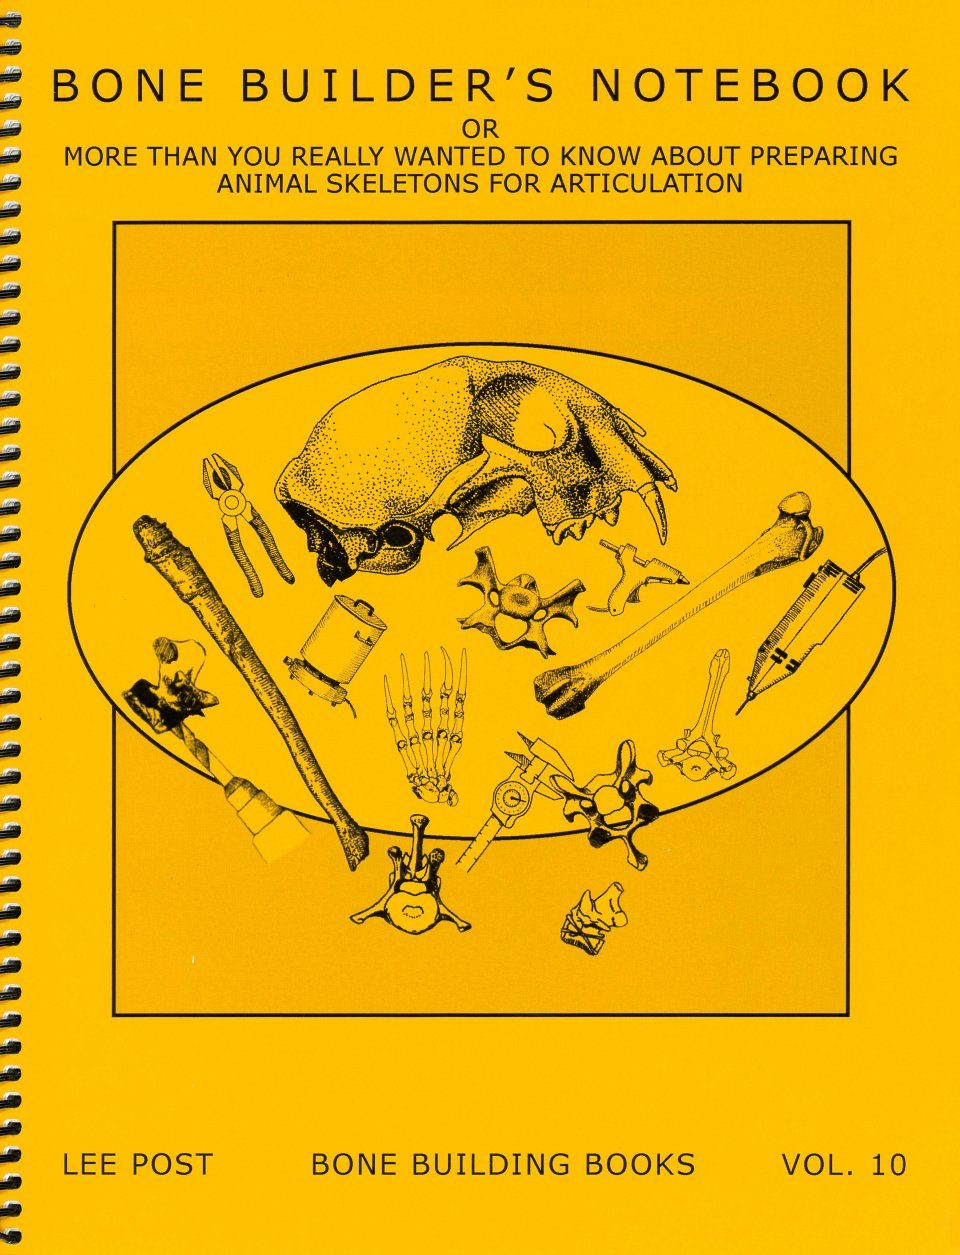 Bone Building Books, Volume 10: Bone Builder's Notebook